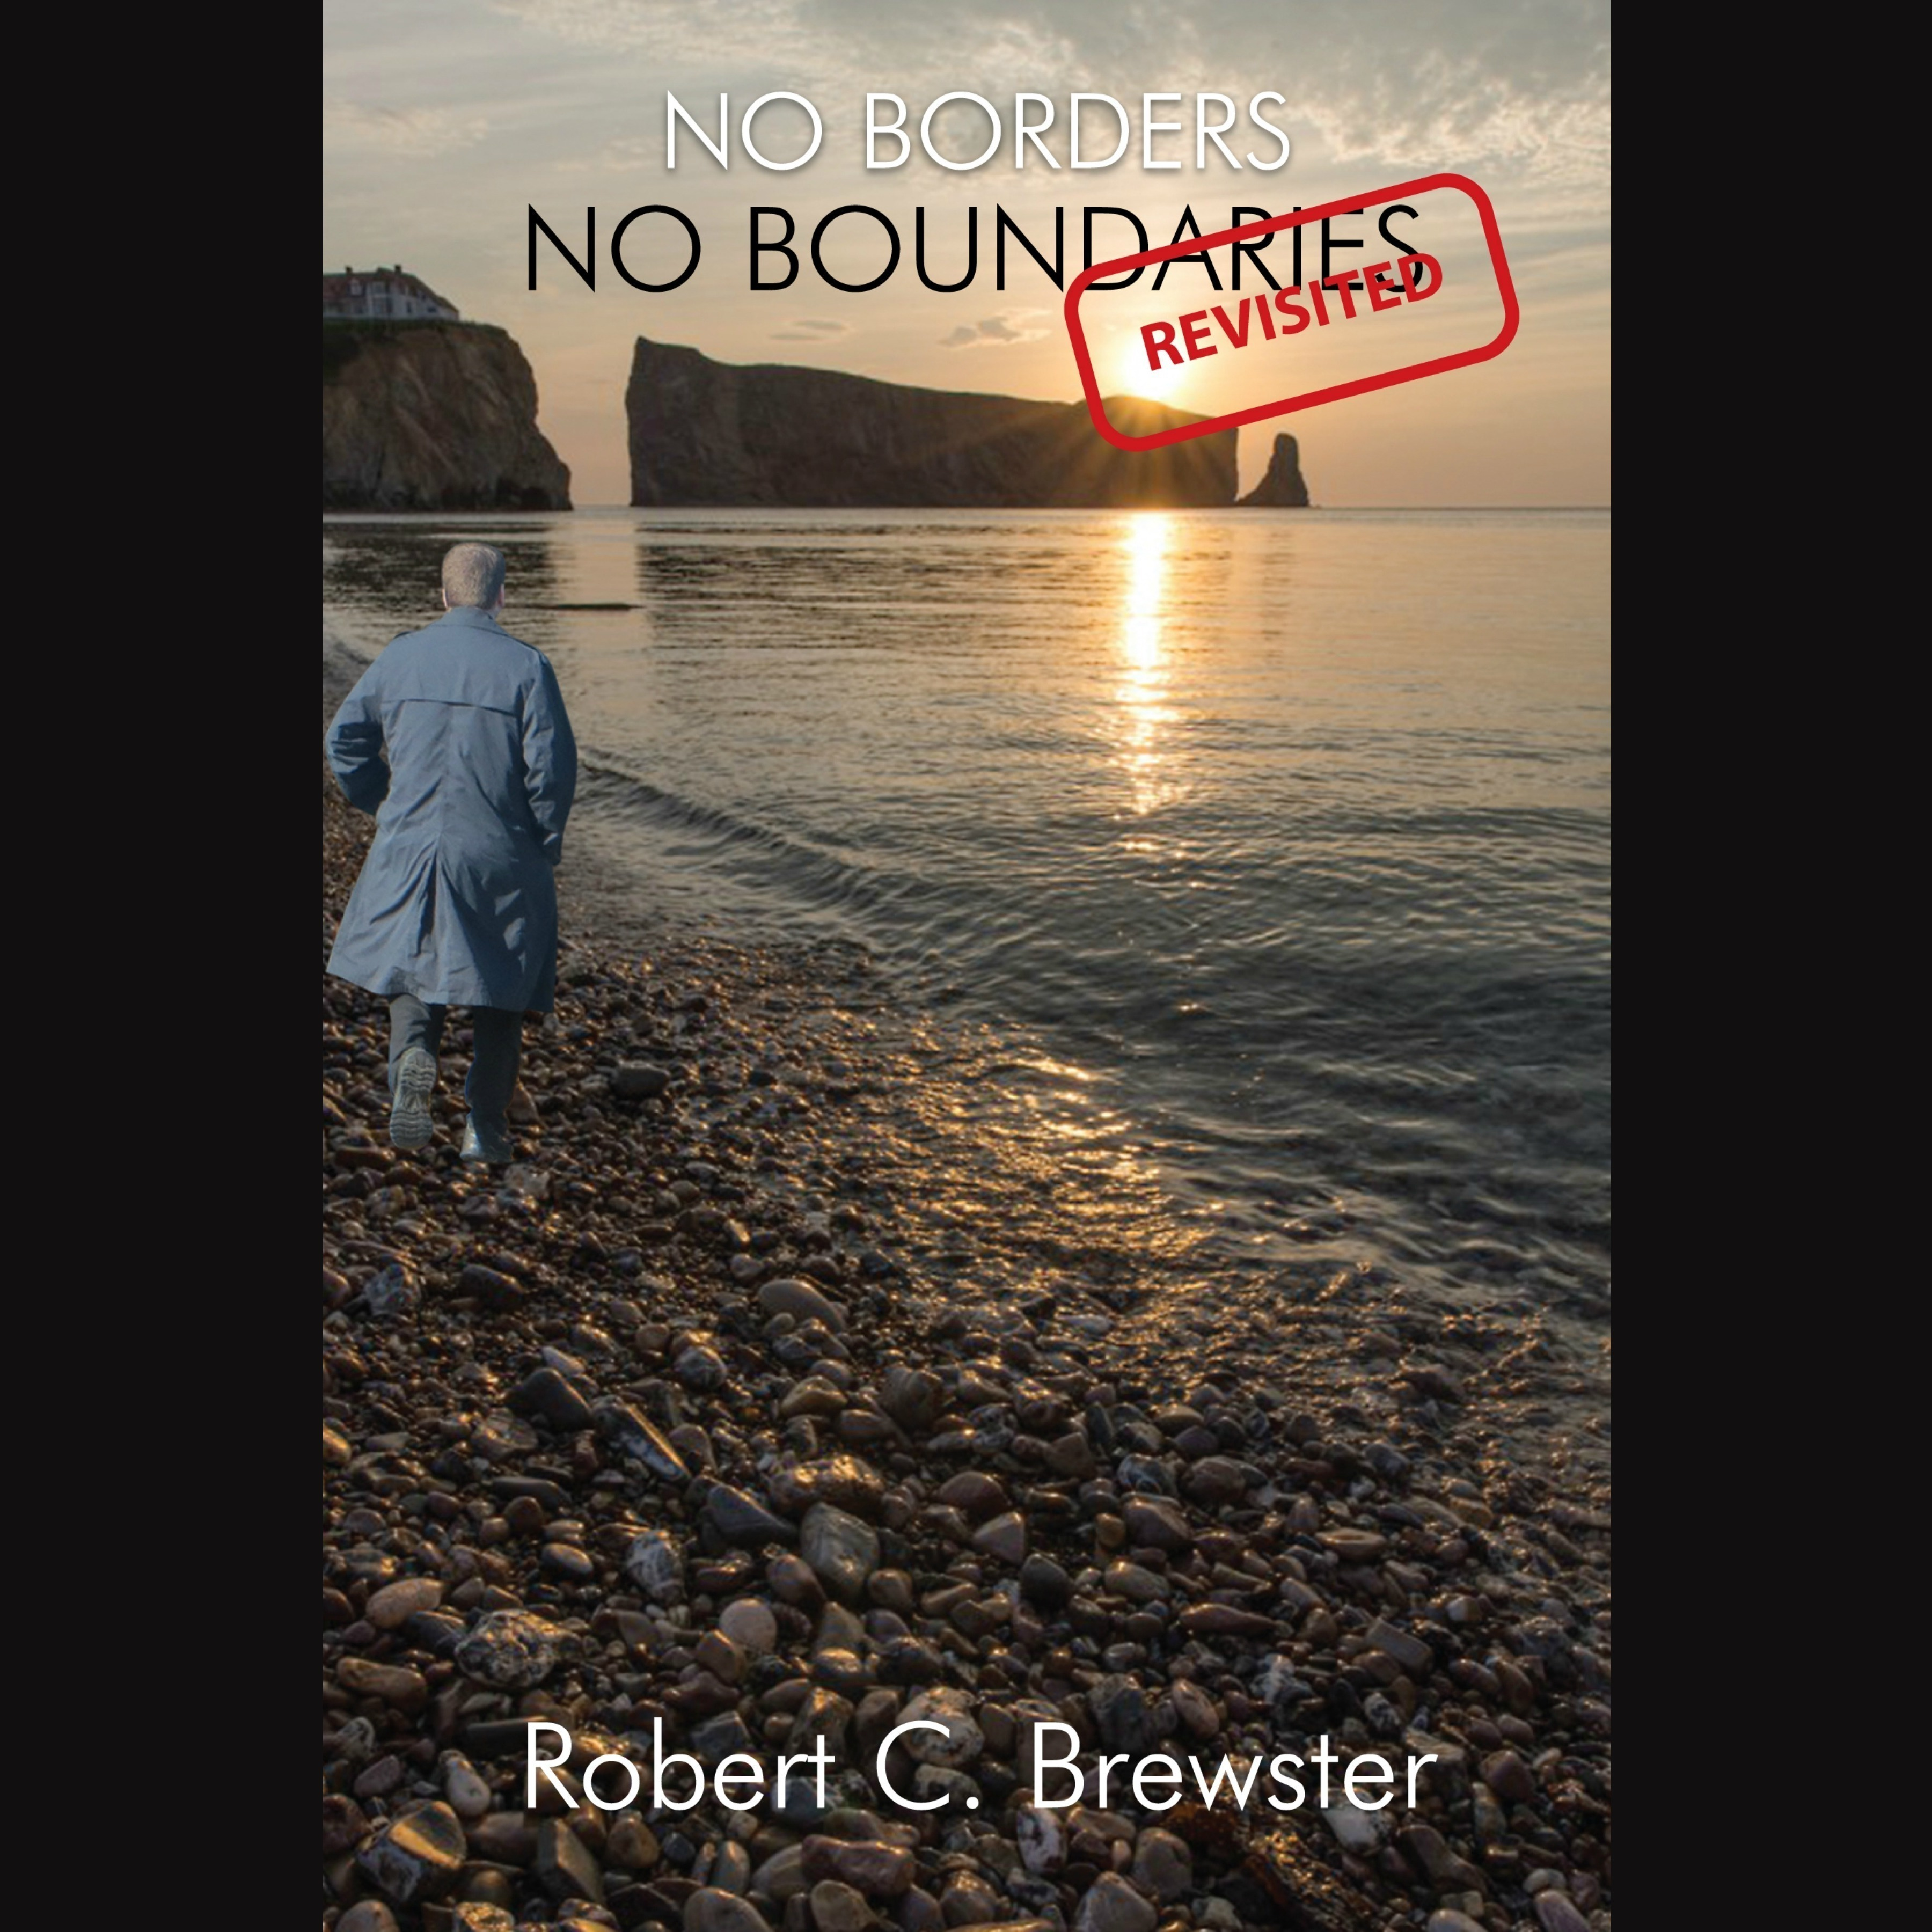 Printable No Borders-No Boundaries (Revisited) Audiobook Cover Art